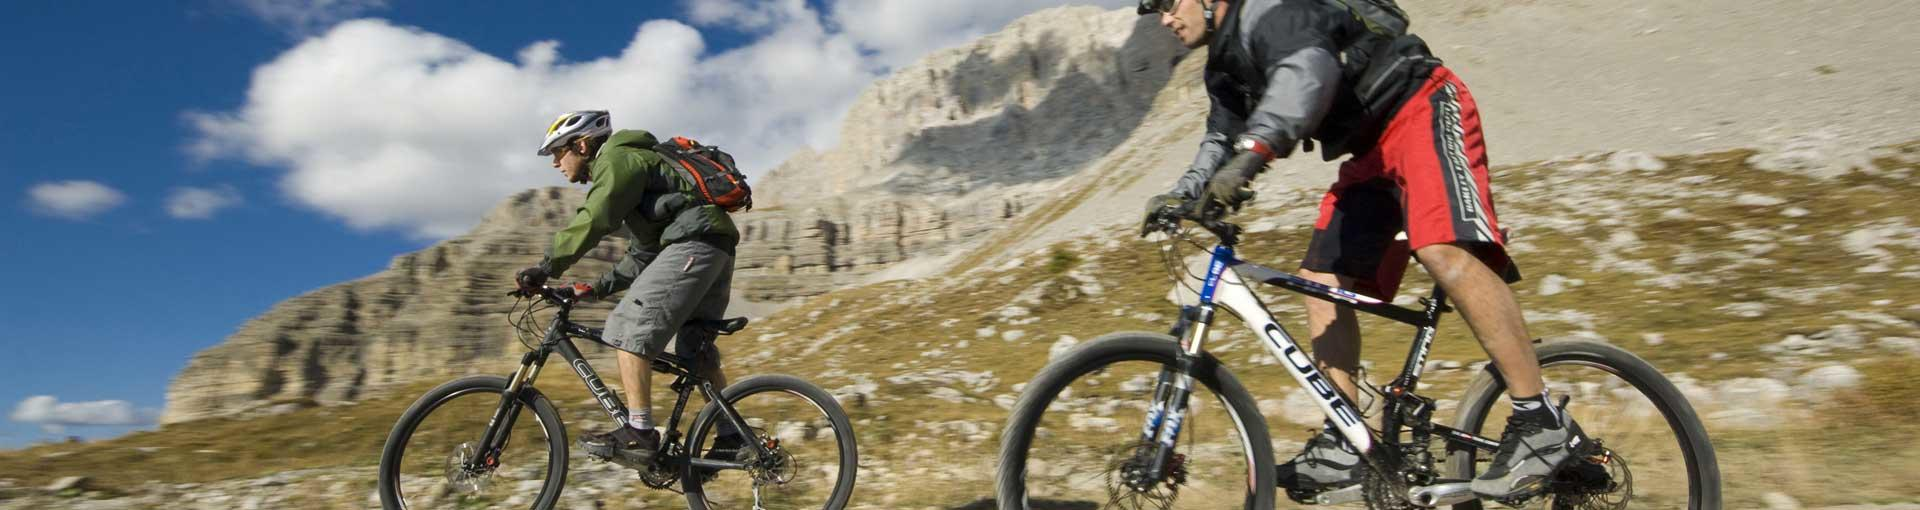 Escursione in mountain bike tra le Dolomiti del Brenta